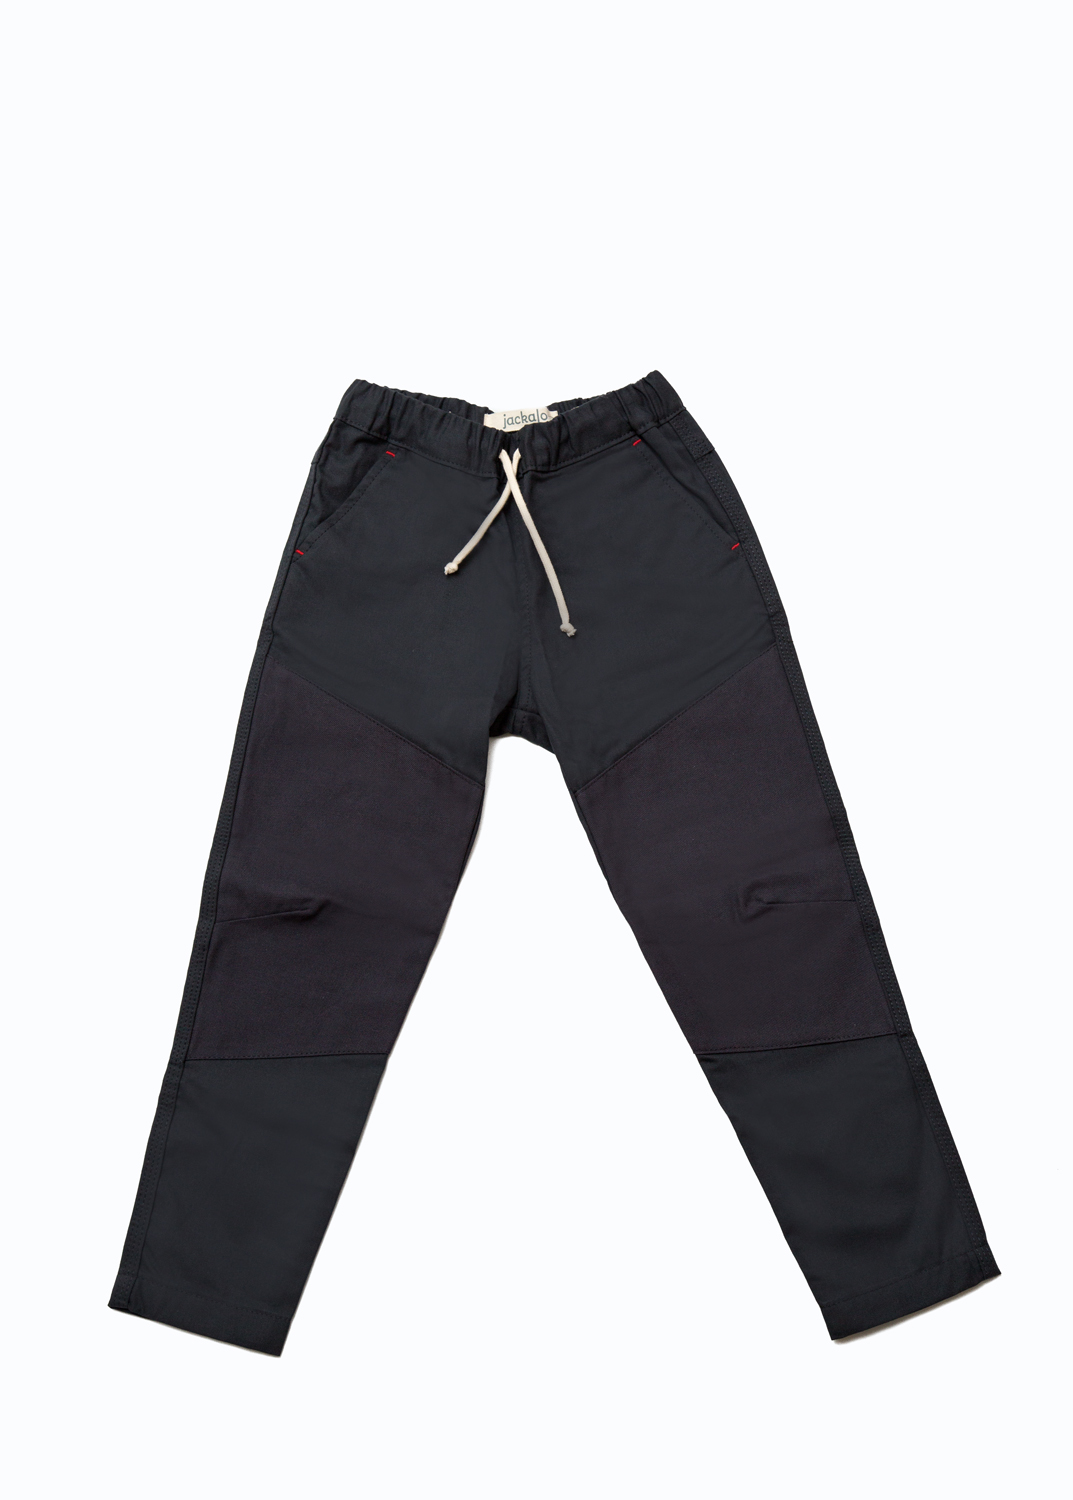 Jackalo Ash Pants in organic cotton twill